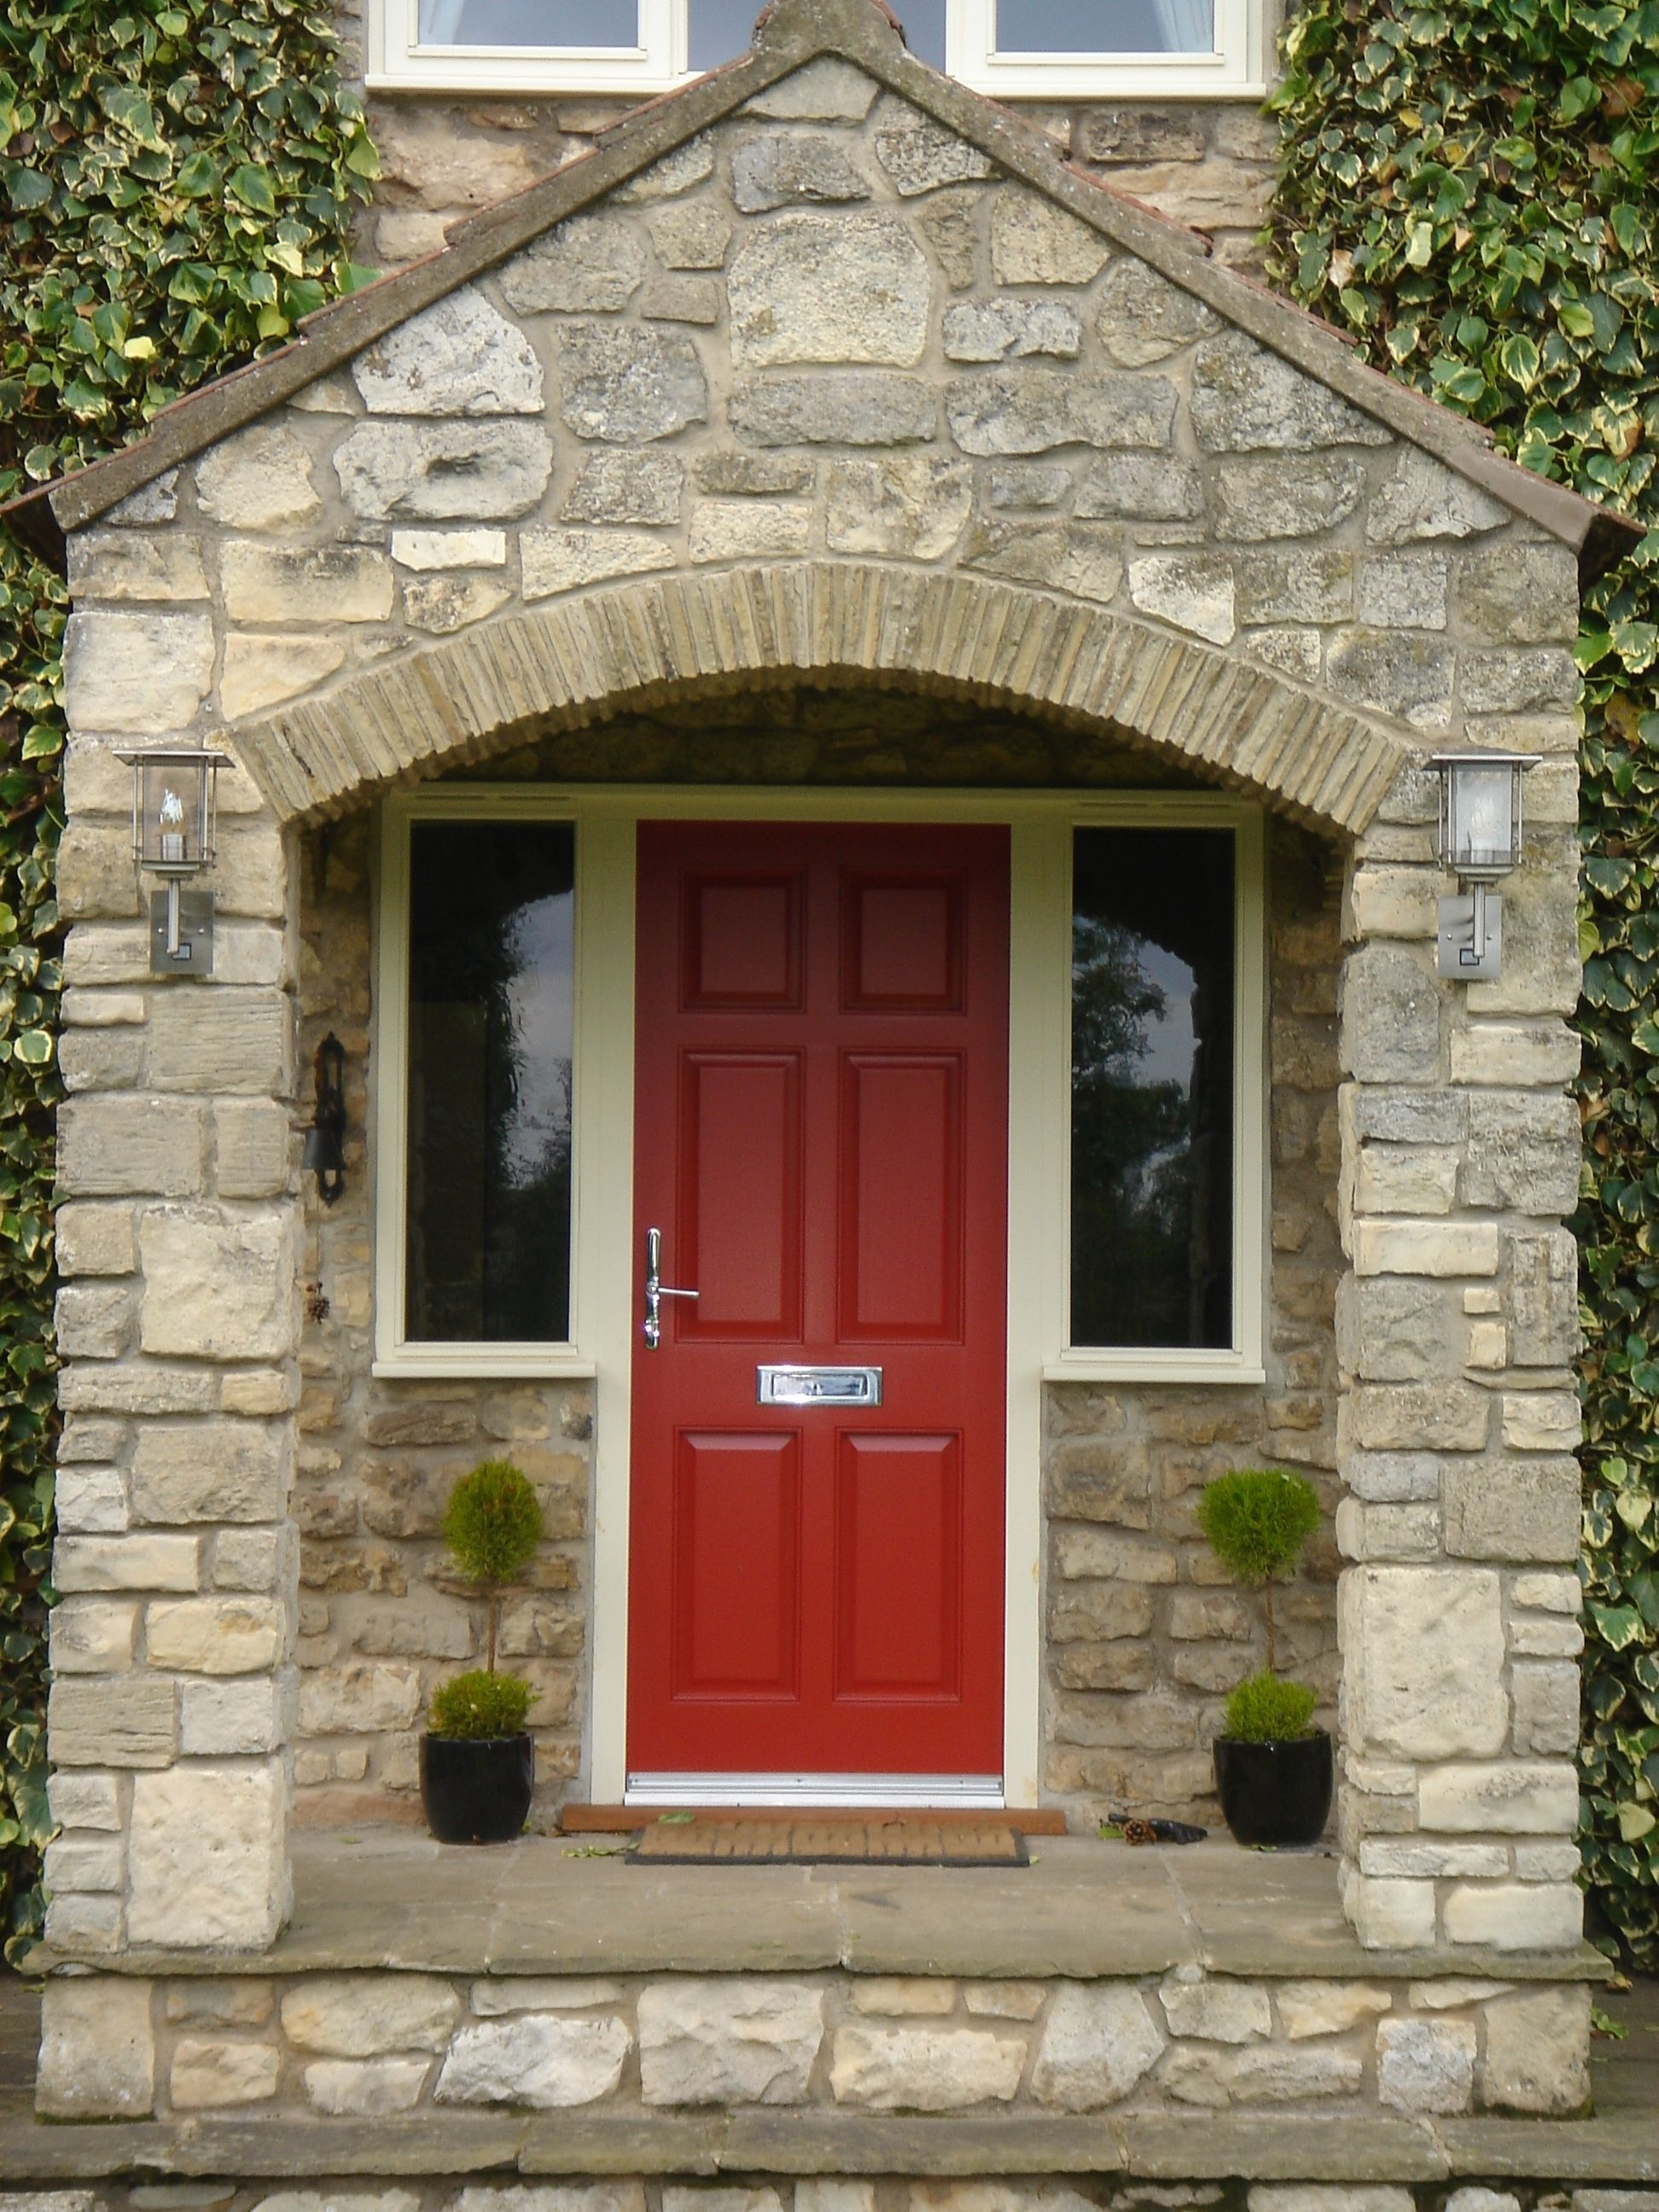 Mortice and tenon doorset supplied by PDS offering high quality timber doors timber windows and & Mortice and tenon doorset supplied by PDS offering high quality ...